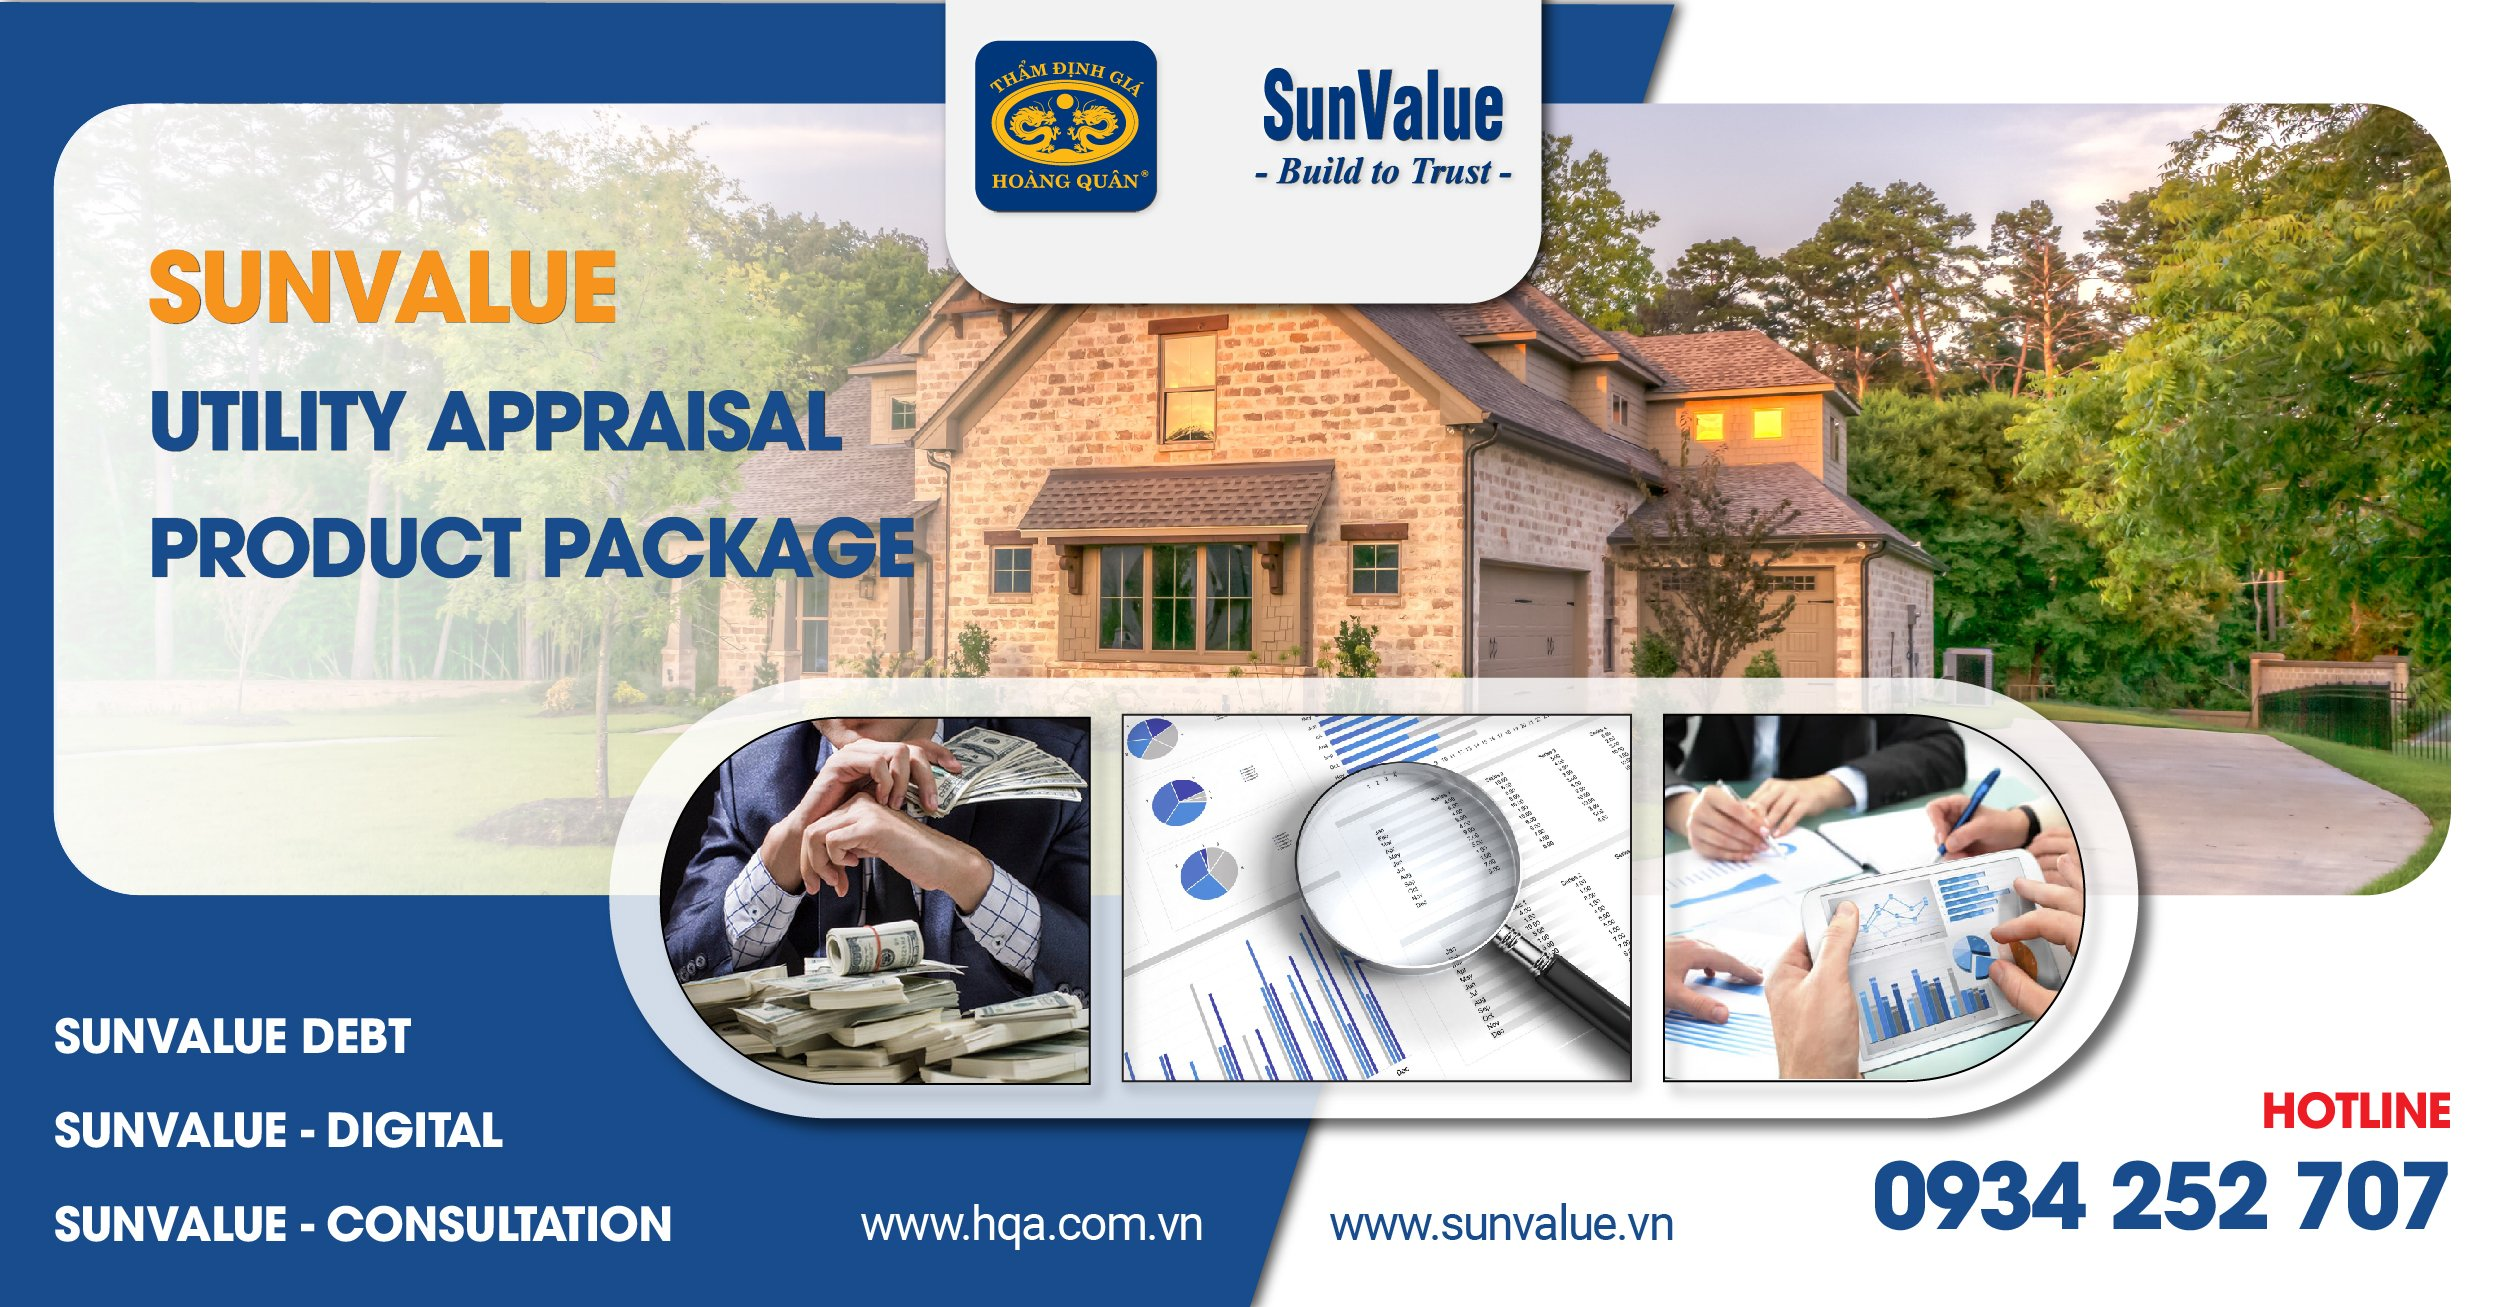 SUNVALUE - CONVENIENCE ASSESSMENT PACKAGE ONLY